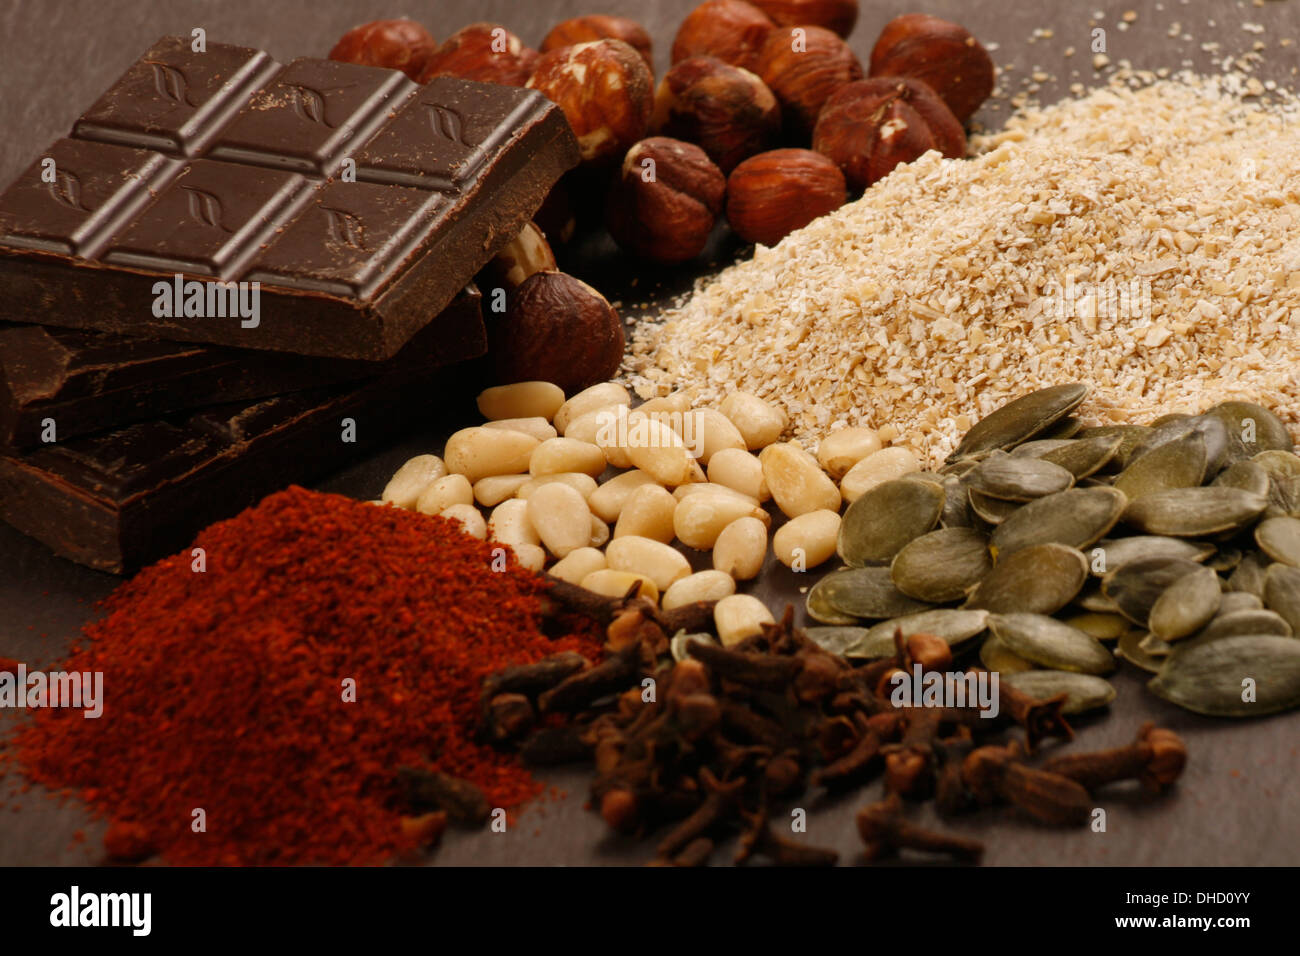 Foods Rich in Manganese - Stock Image